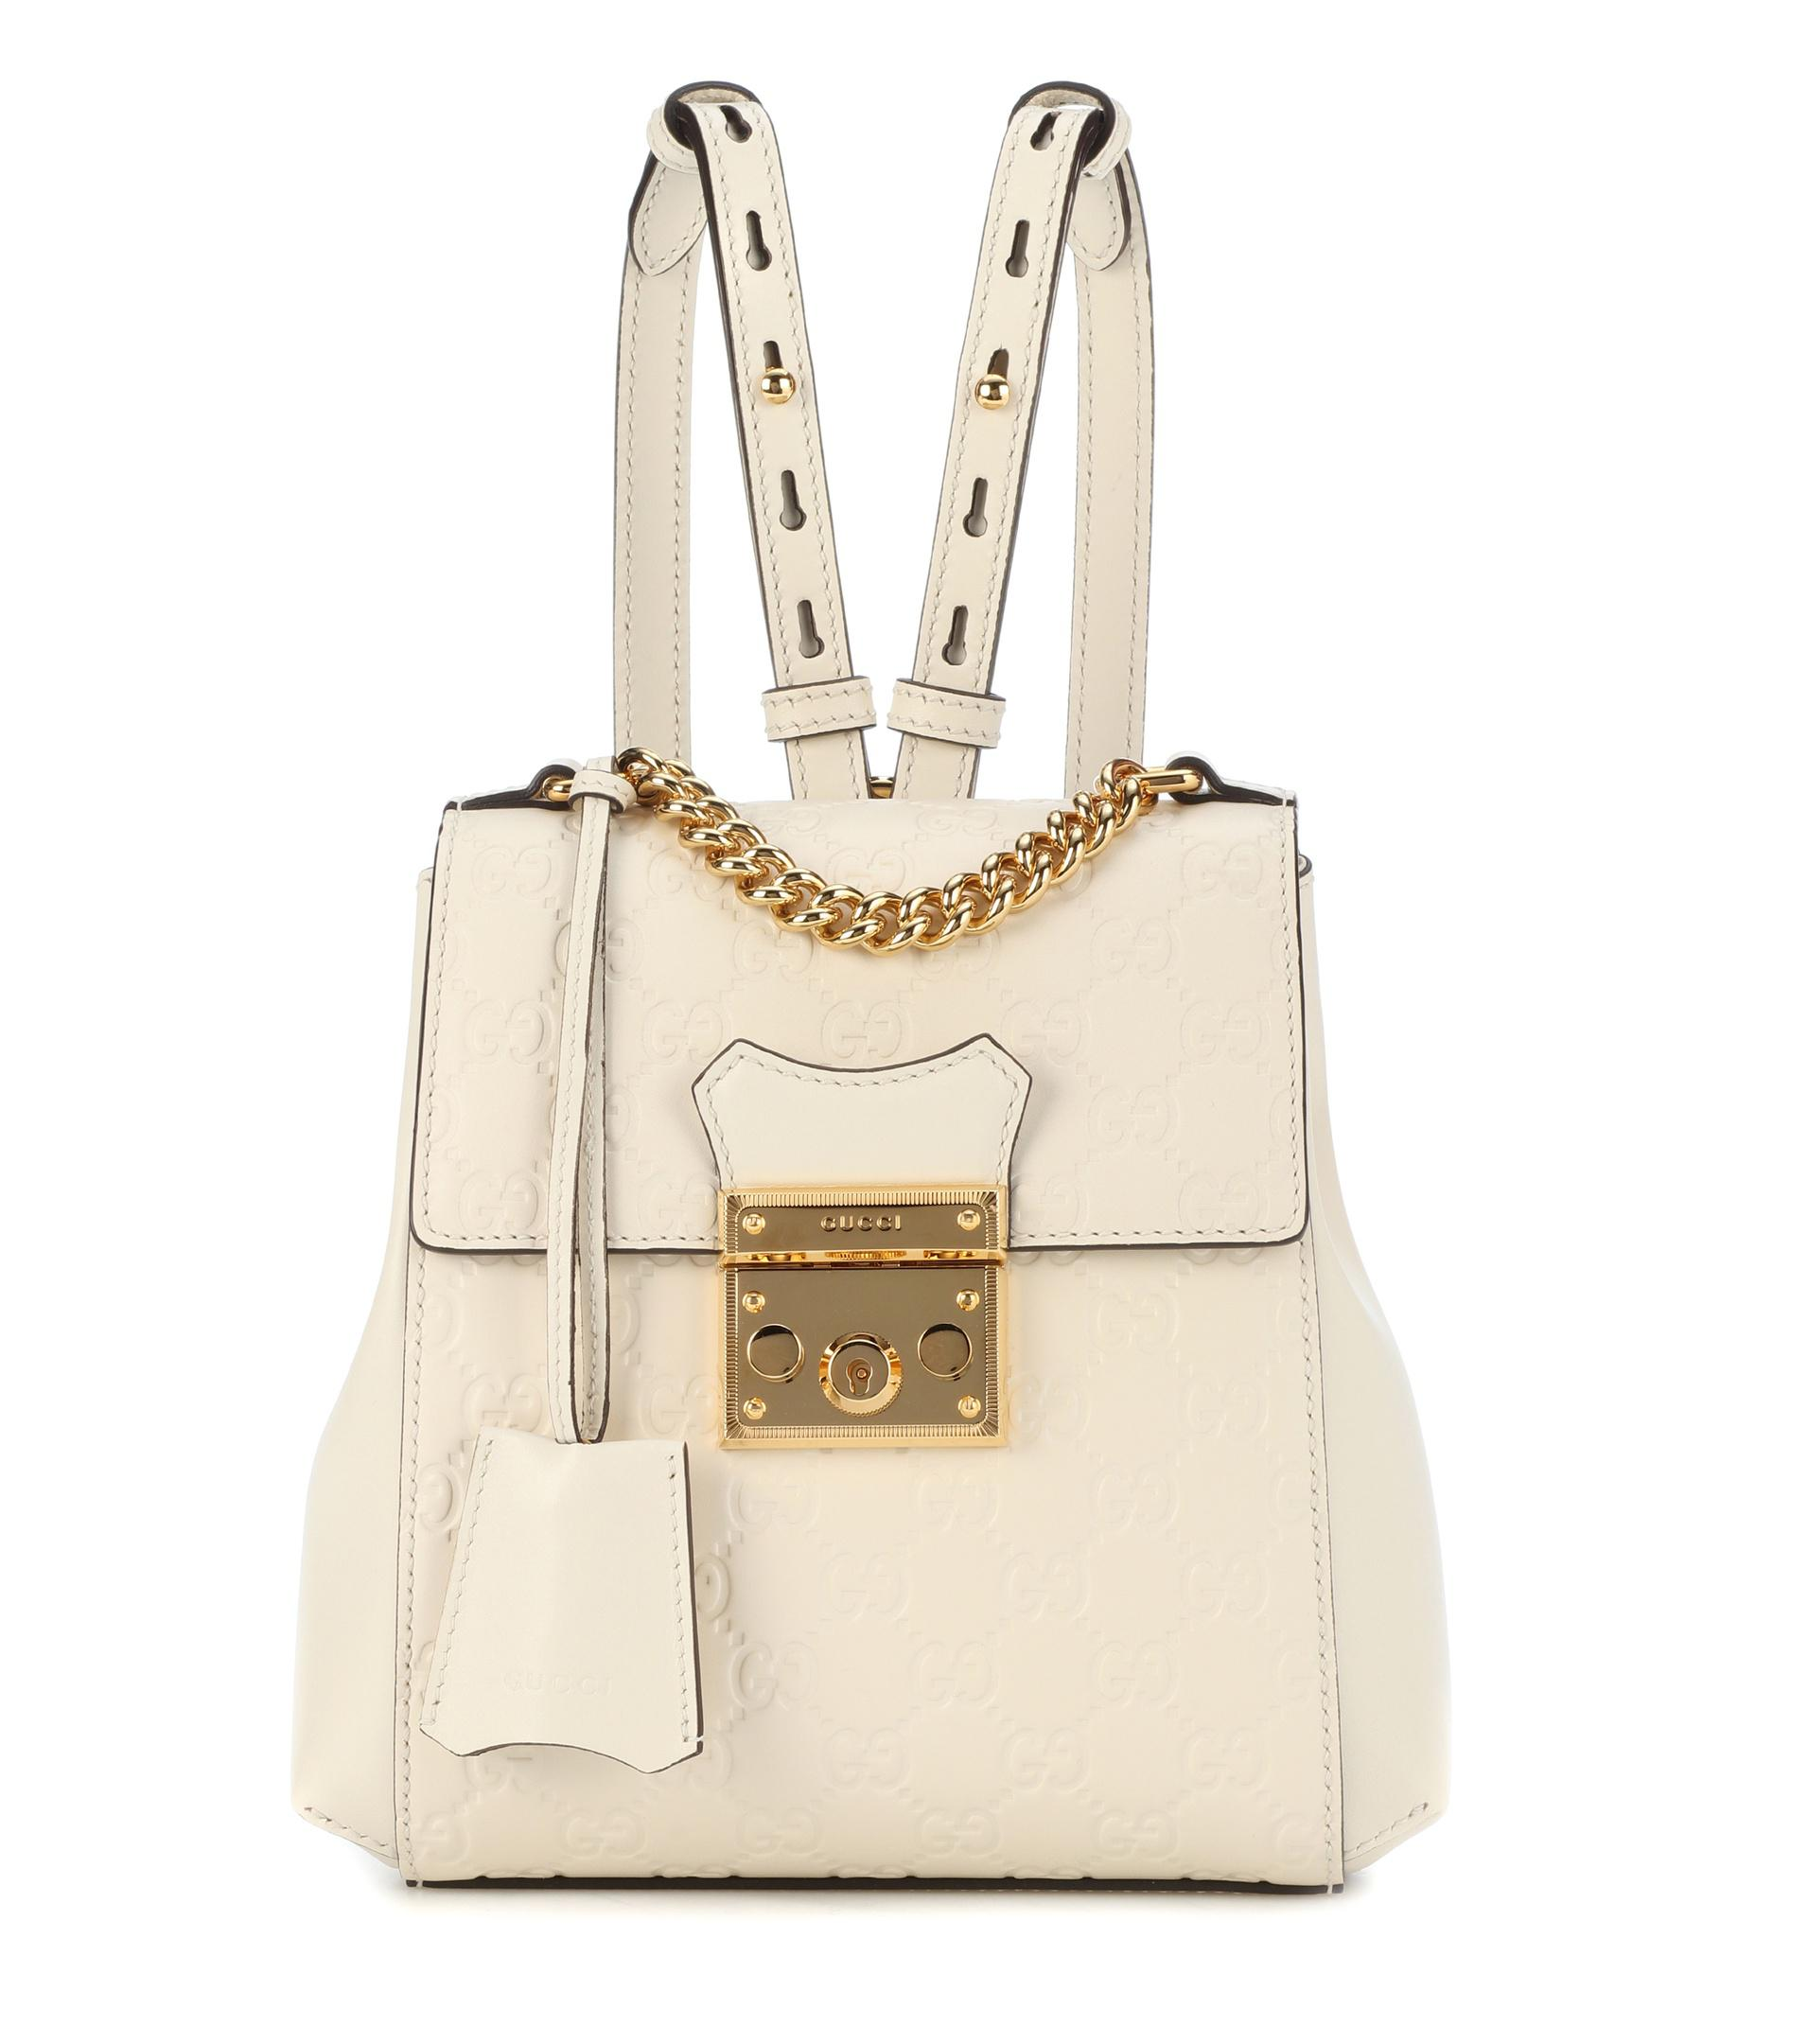 a82c7b06f0c Gucci - White Padlock Embossed Leather Backpack - Lyst. View fullscreen